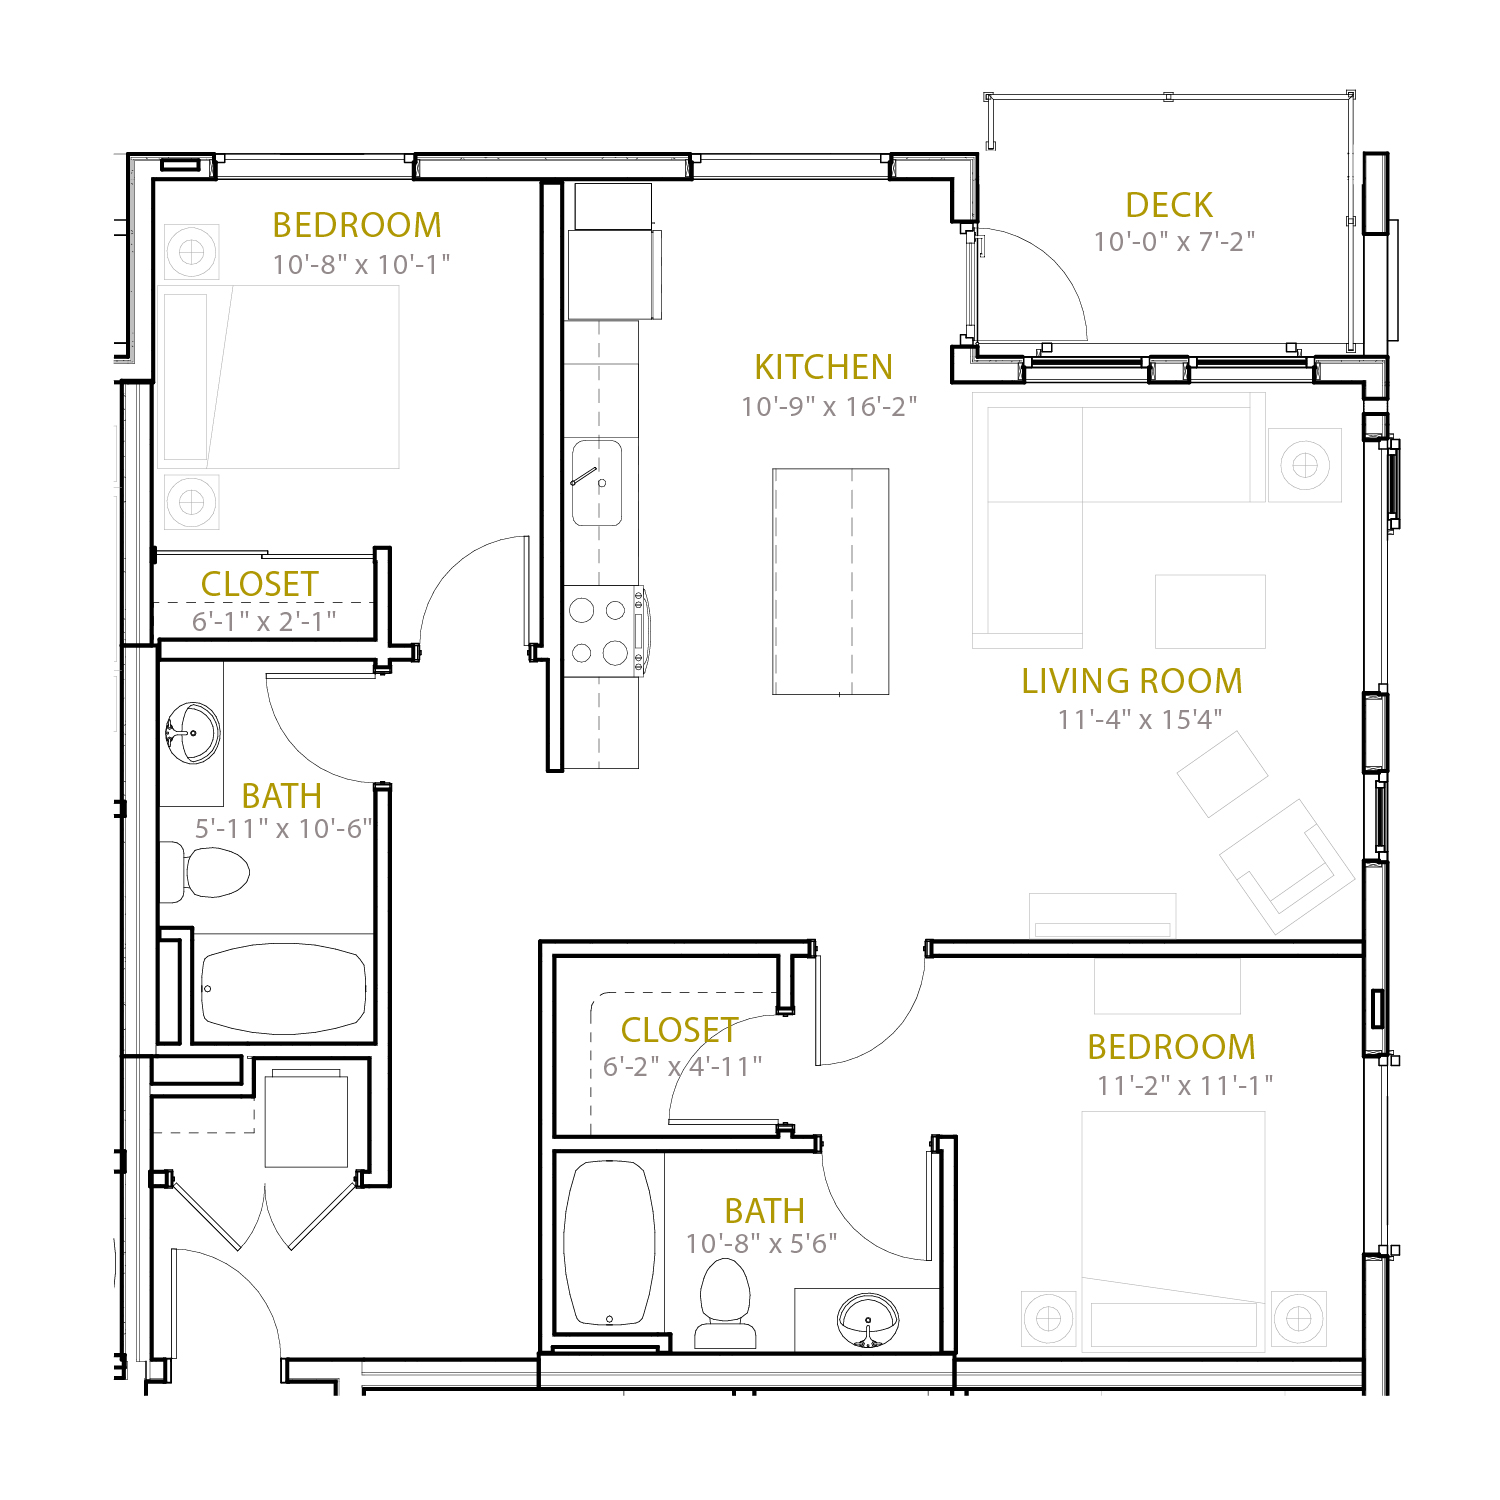 C Three floor plan diagram. Two bedrooms, two bathrooms, an open kitchen and living area, and a deck.